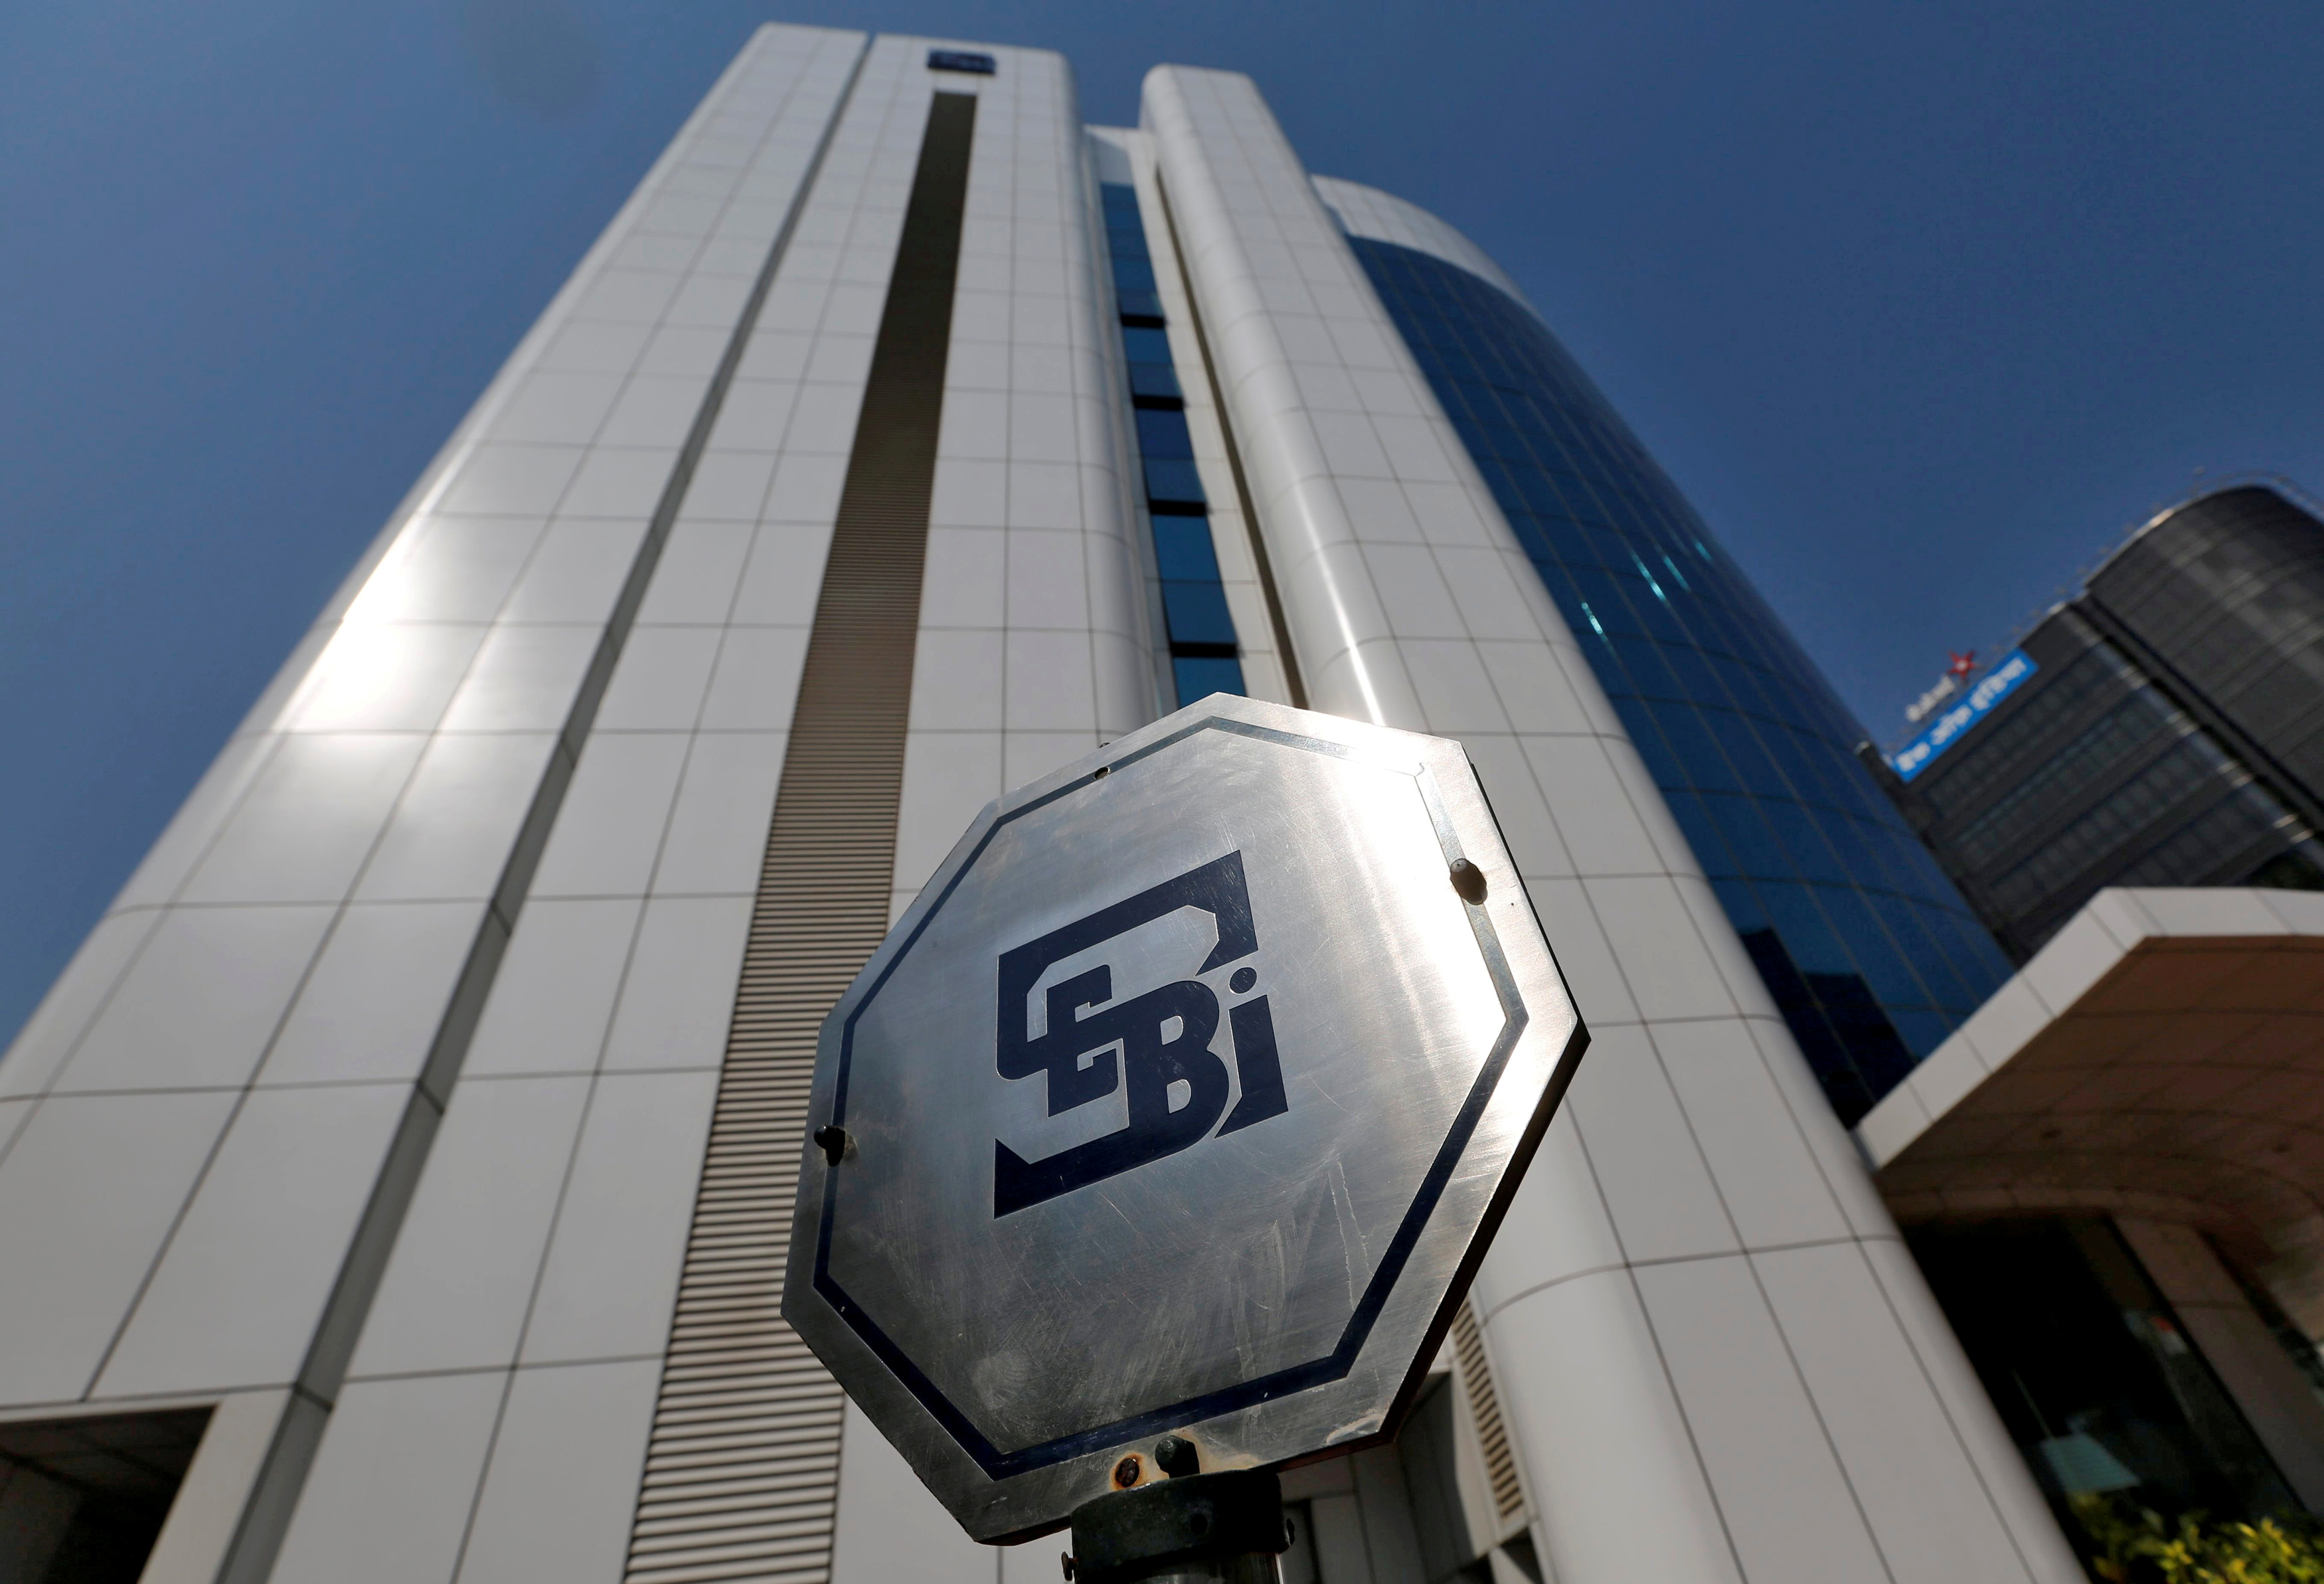 The logo of the Securities and Exchange Board of India (SEBI) is pictured on the premises of its headquarters in Mumbai, India, March 1, 2017. REUTERS/Shailesh Andrade/File Photo